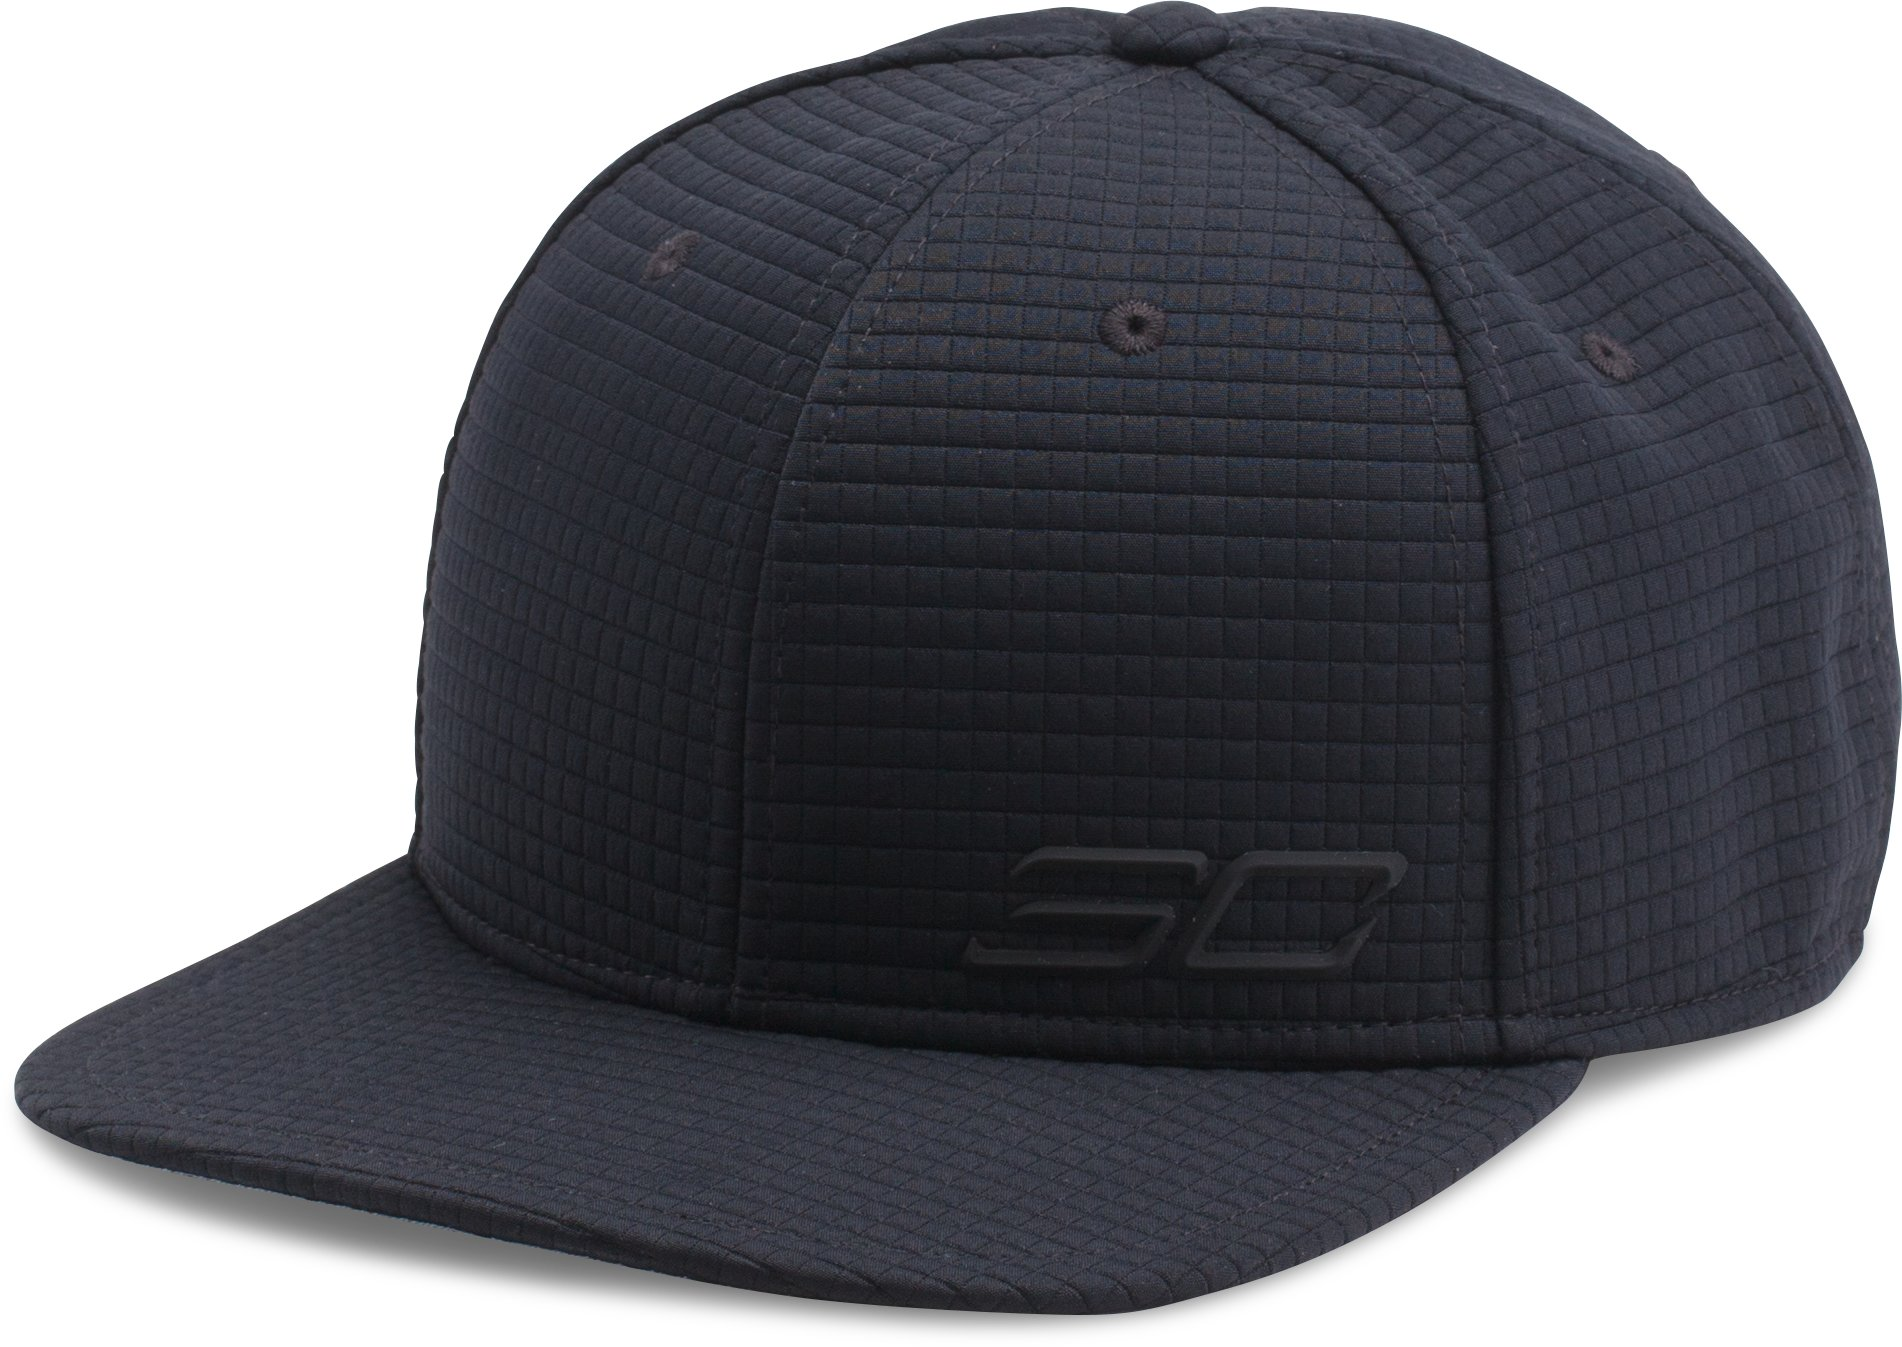 Men's SC30 Snapback Cap 2 Colors $20.99 - $26.99